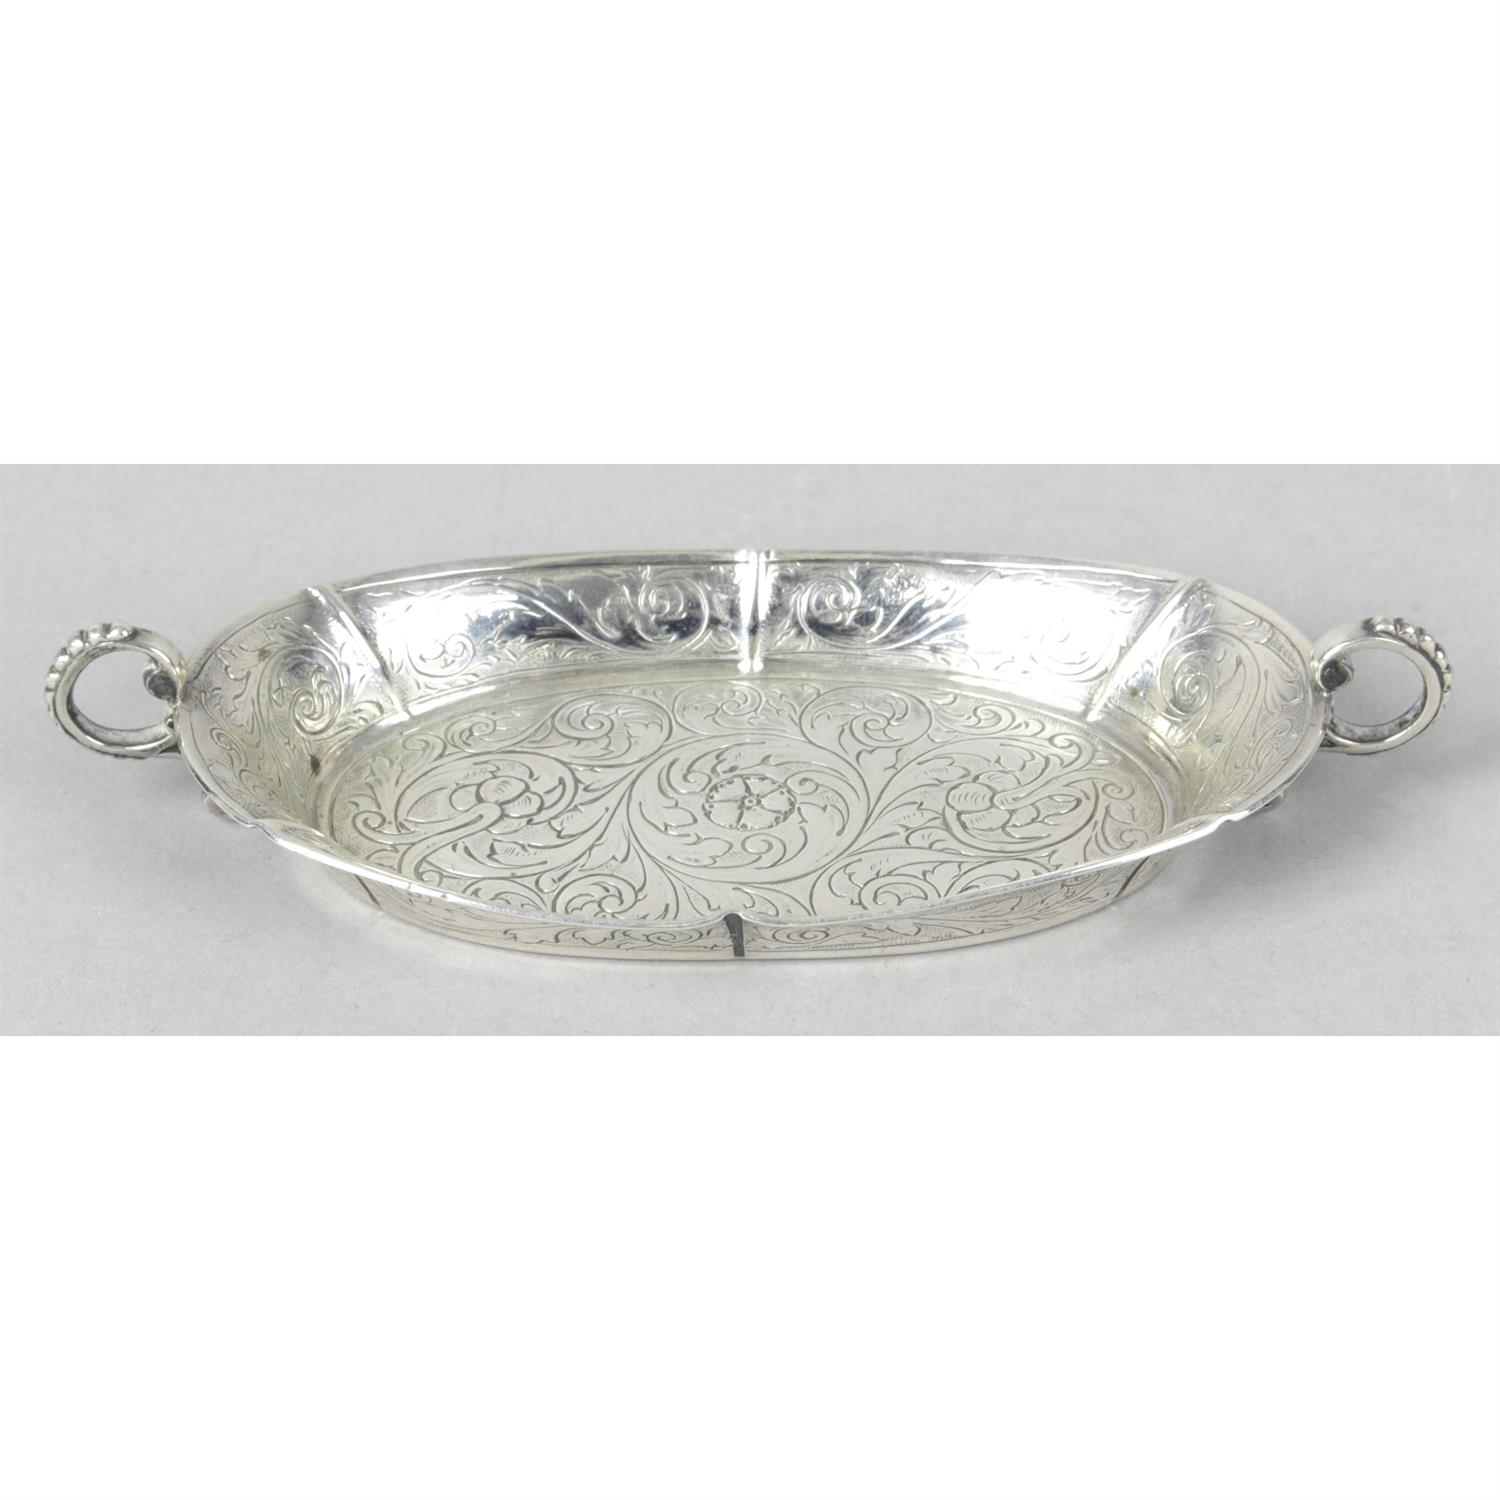 A silver trinket dish, given as a gift with accompanying letter of royal interest.